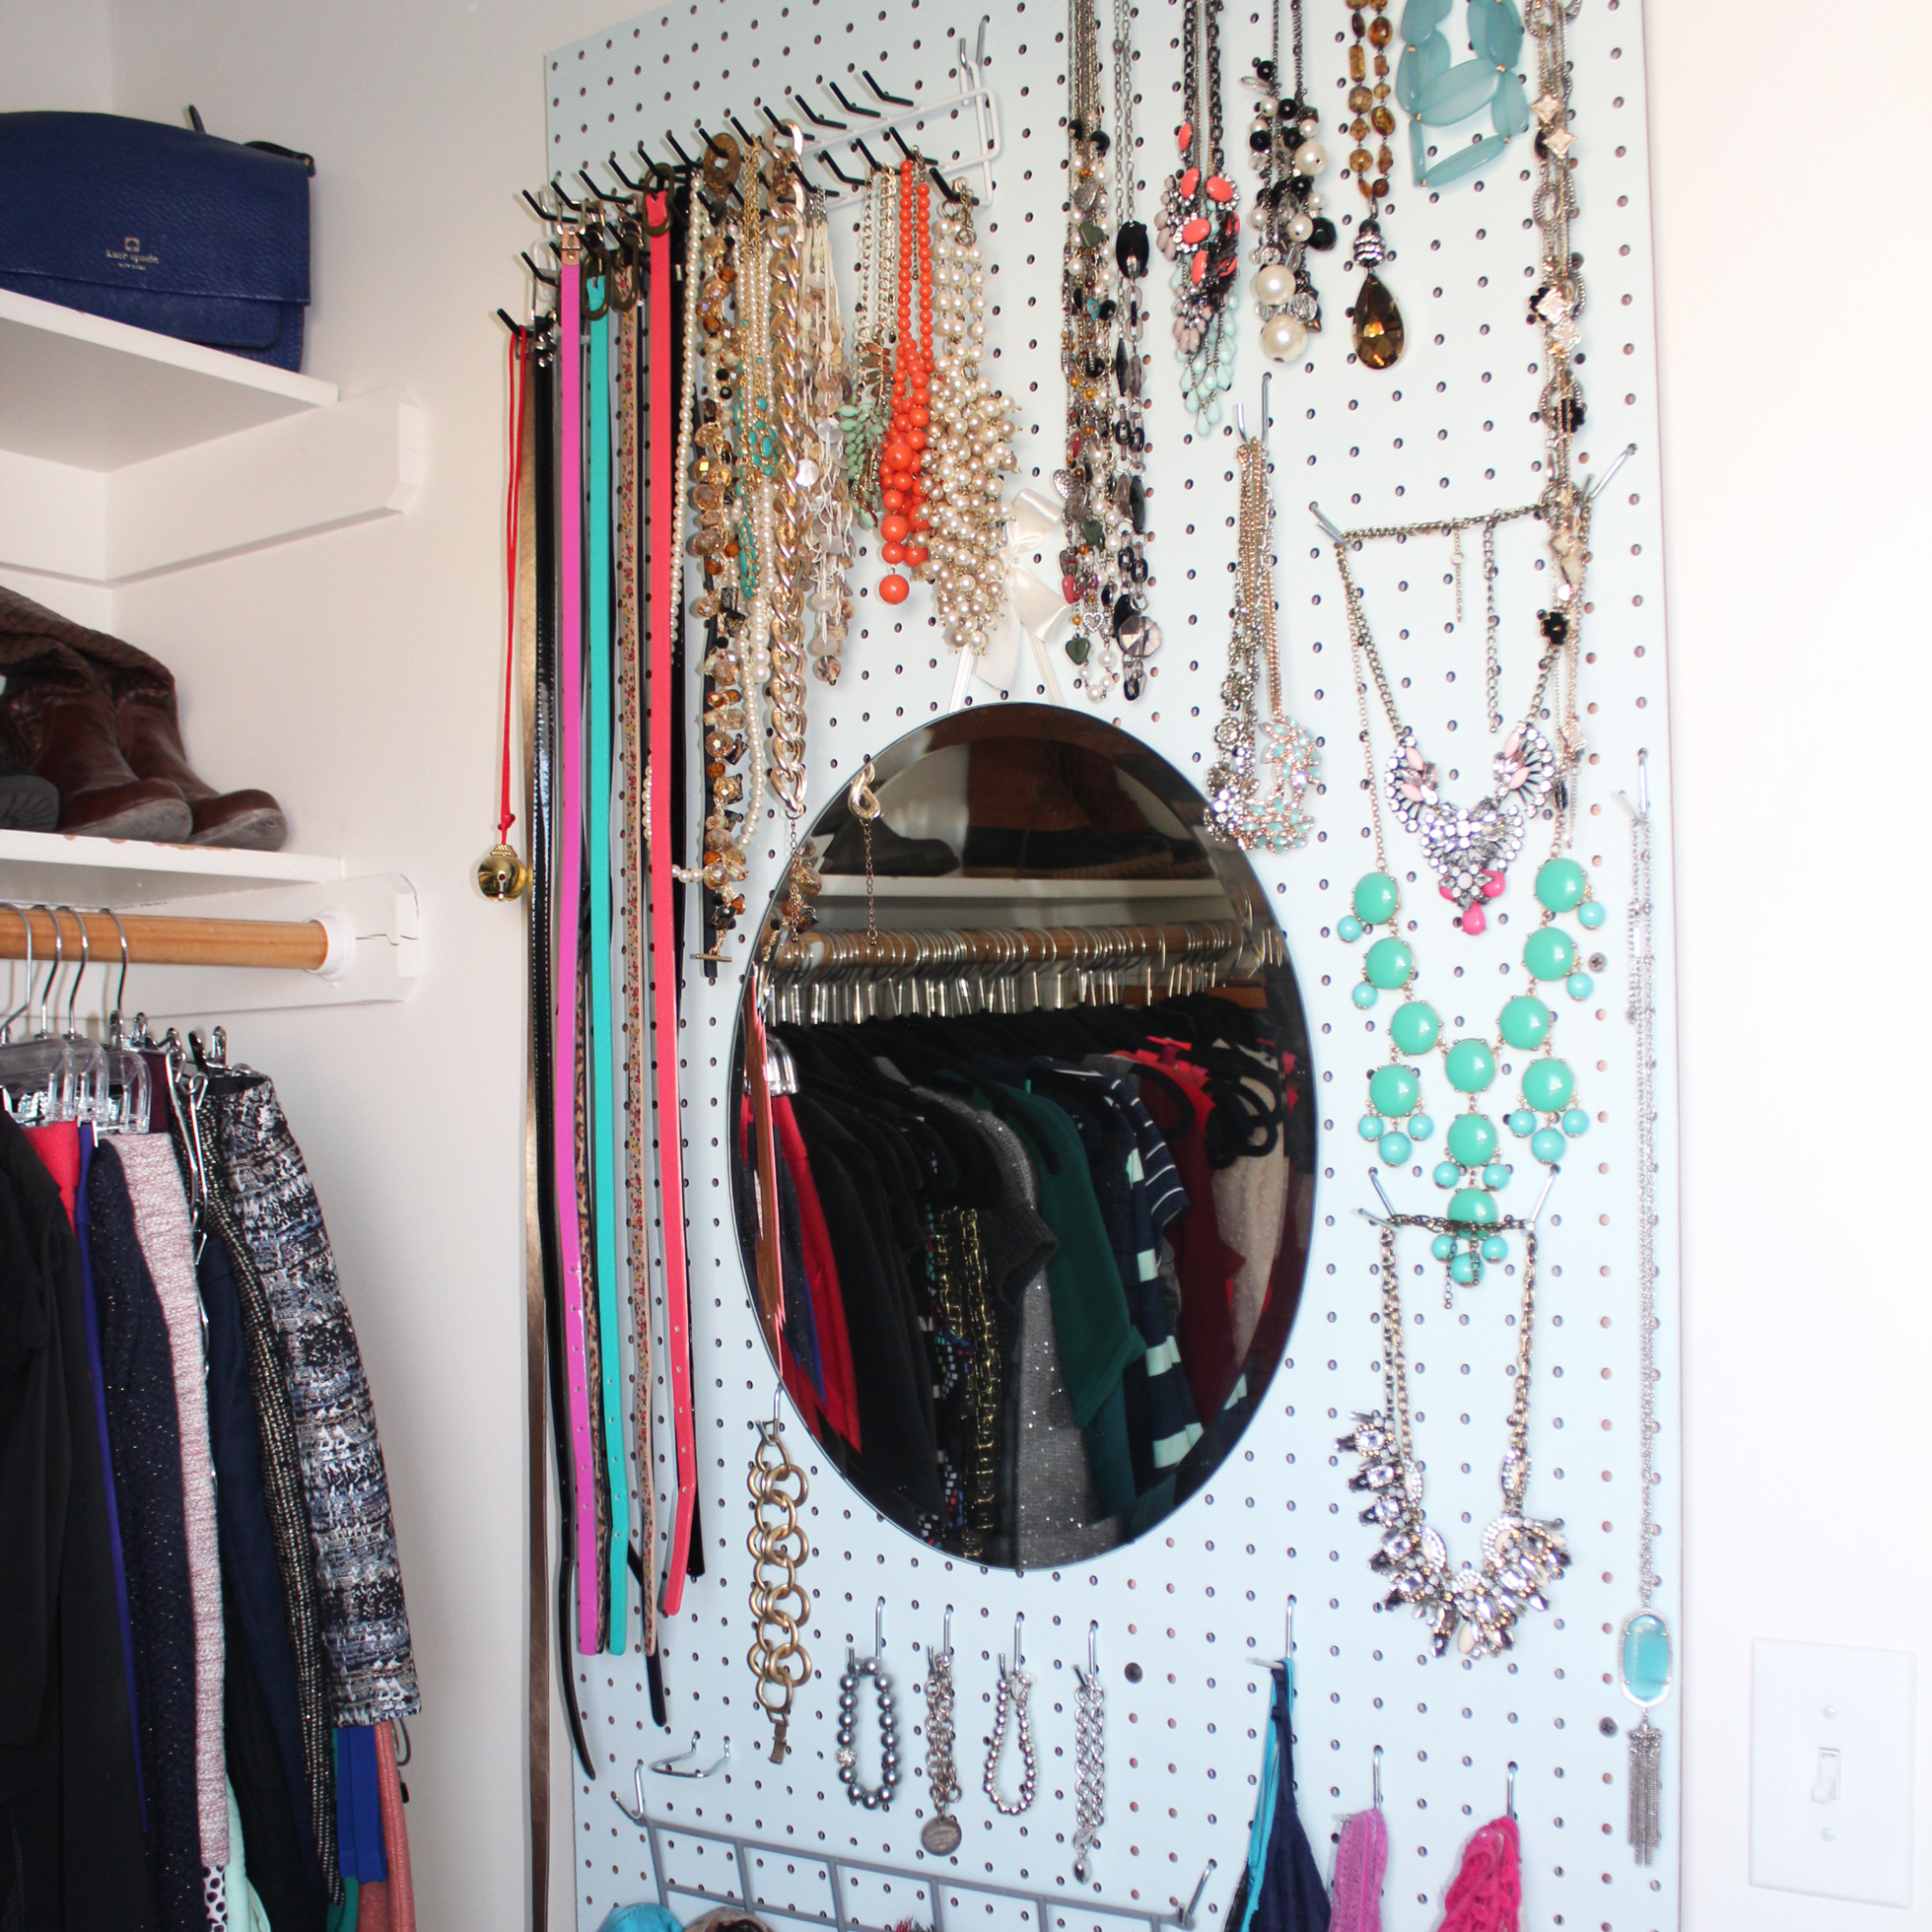 White pegboard with necklaces and scarves in a closet